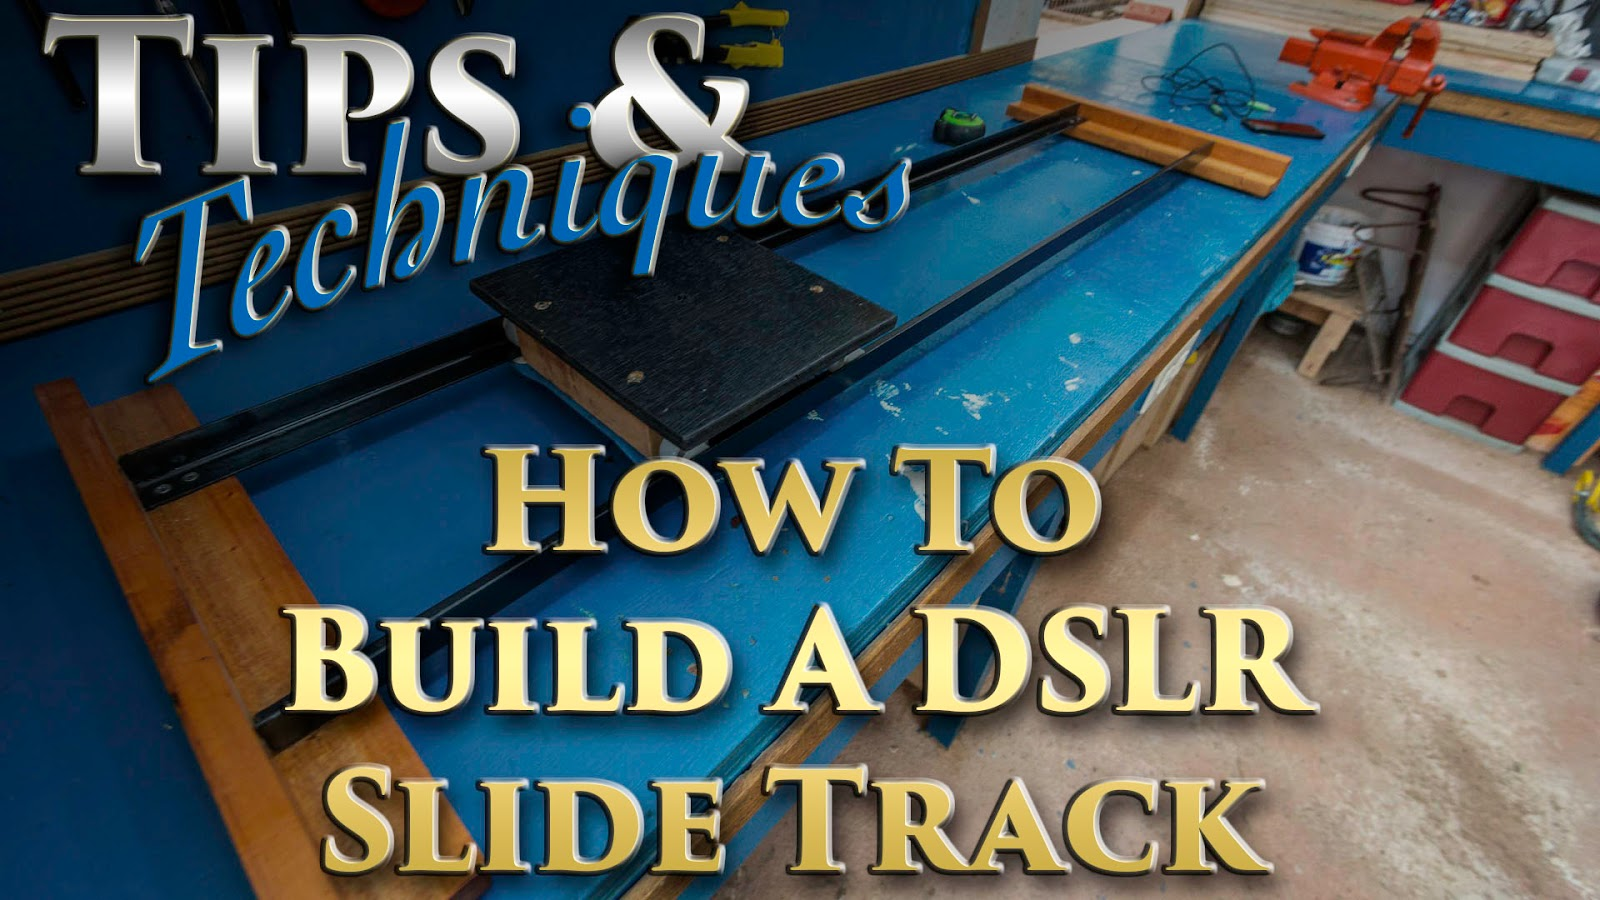 Learn How To Build A DSLR Slide Track